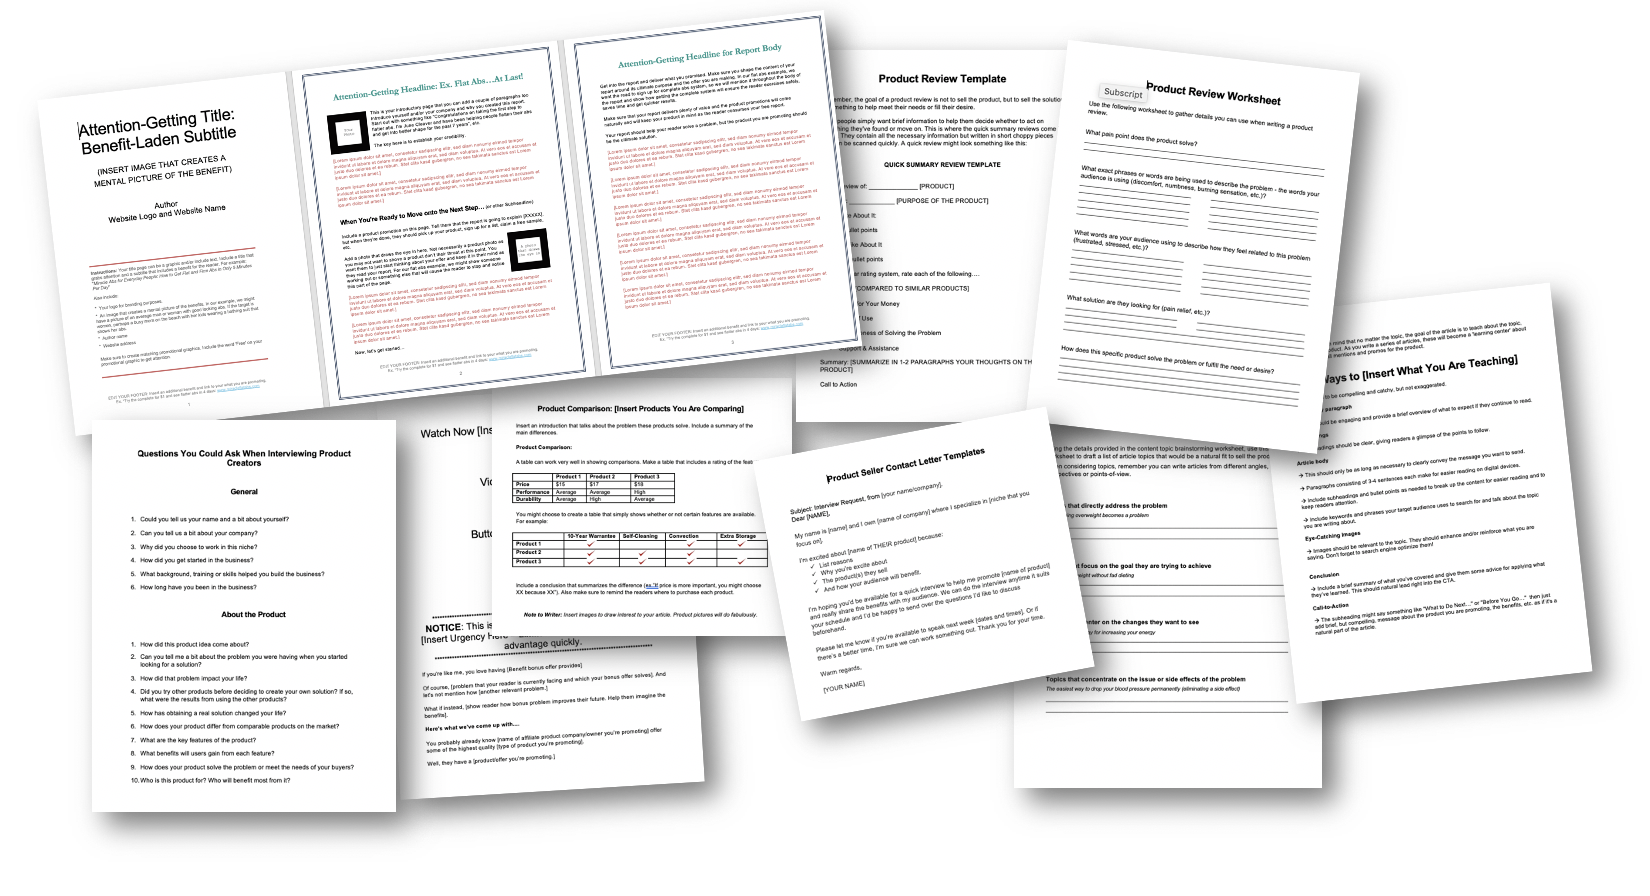 Content Templates and Worksheet